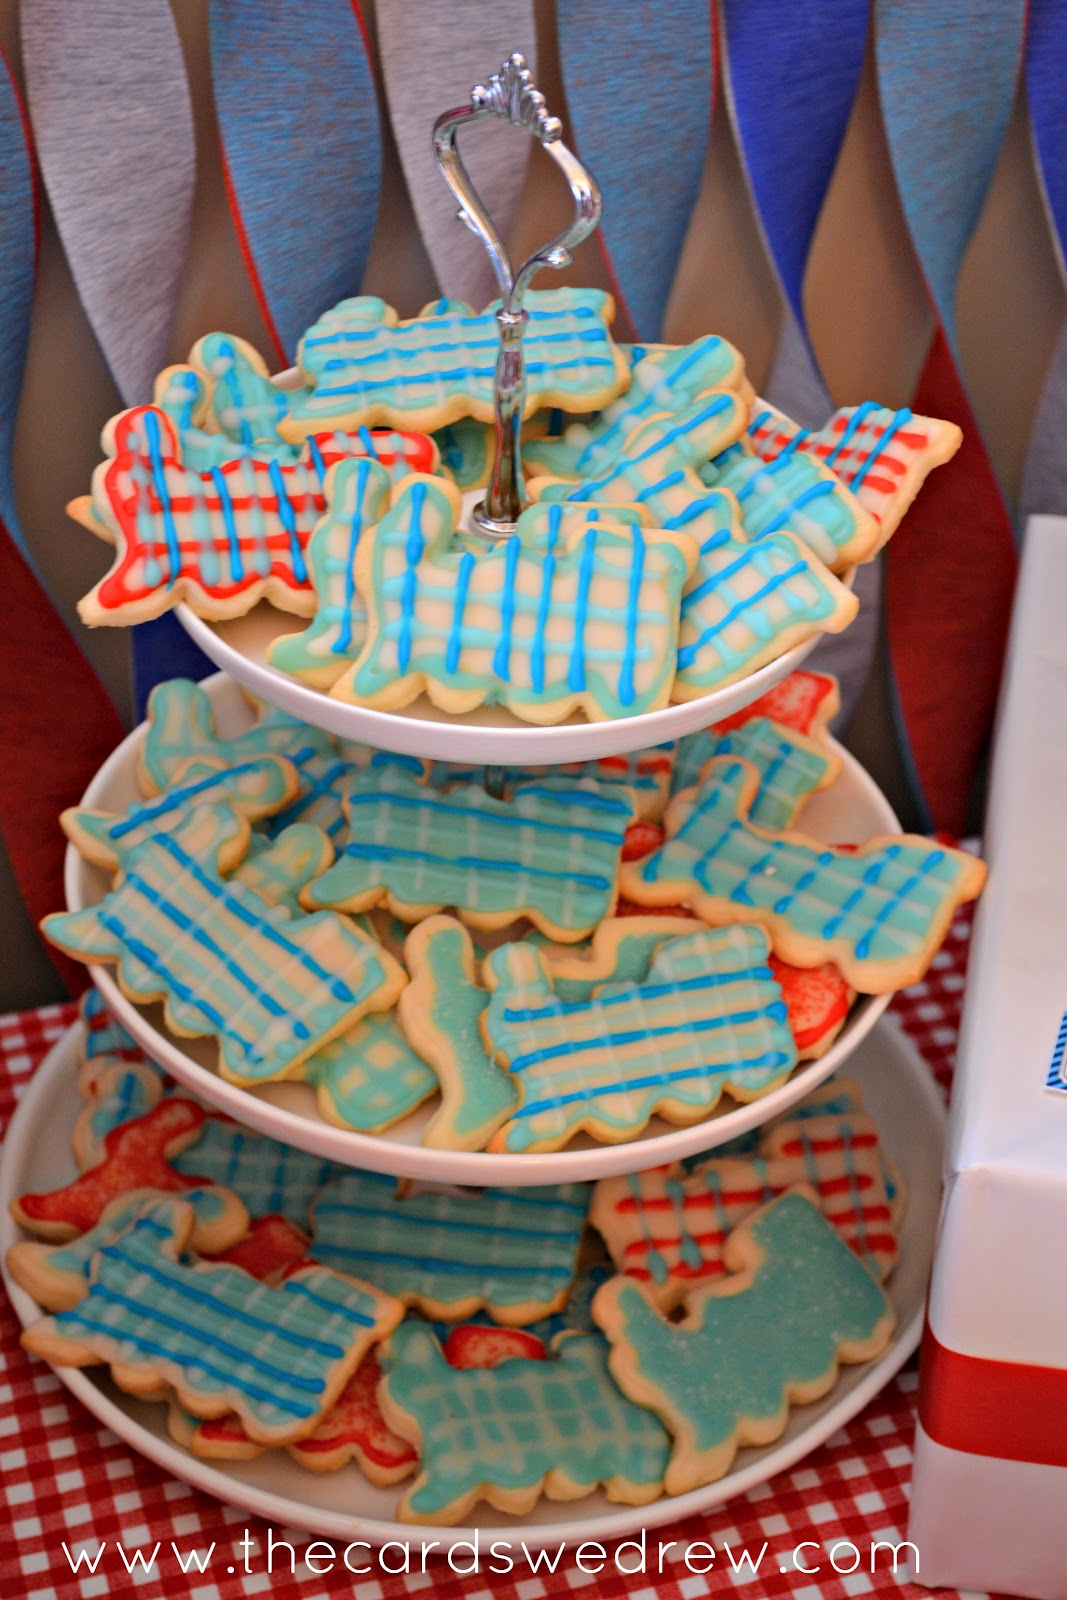 Train Cookies Were Made By The Grandma Of Birthday Boy They Turned Out And Tasted Great